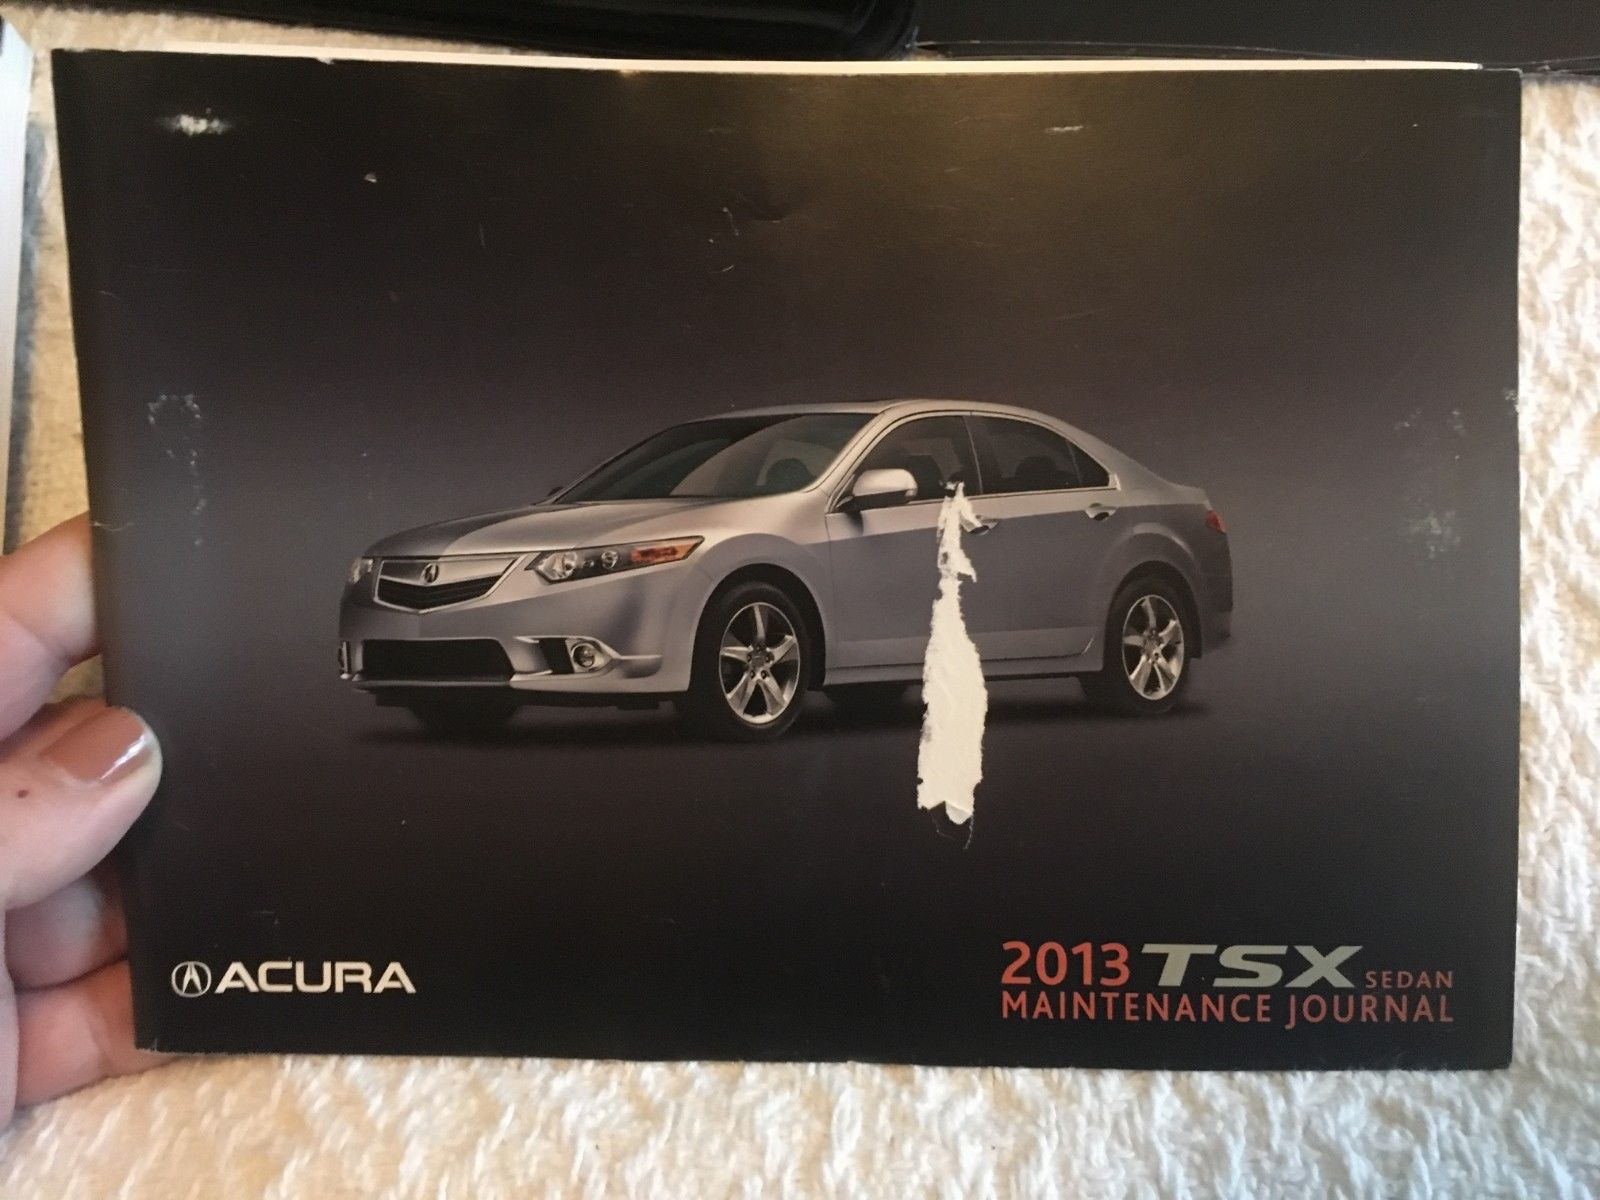 EUC 2013 Acura TSX Sedan Owners Manuals with Case